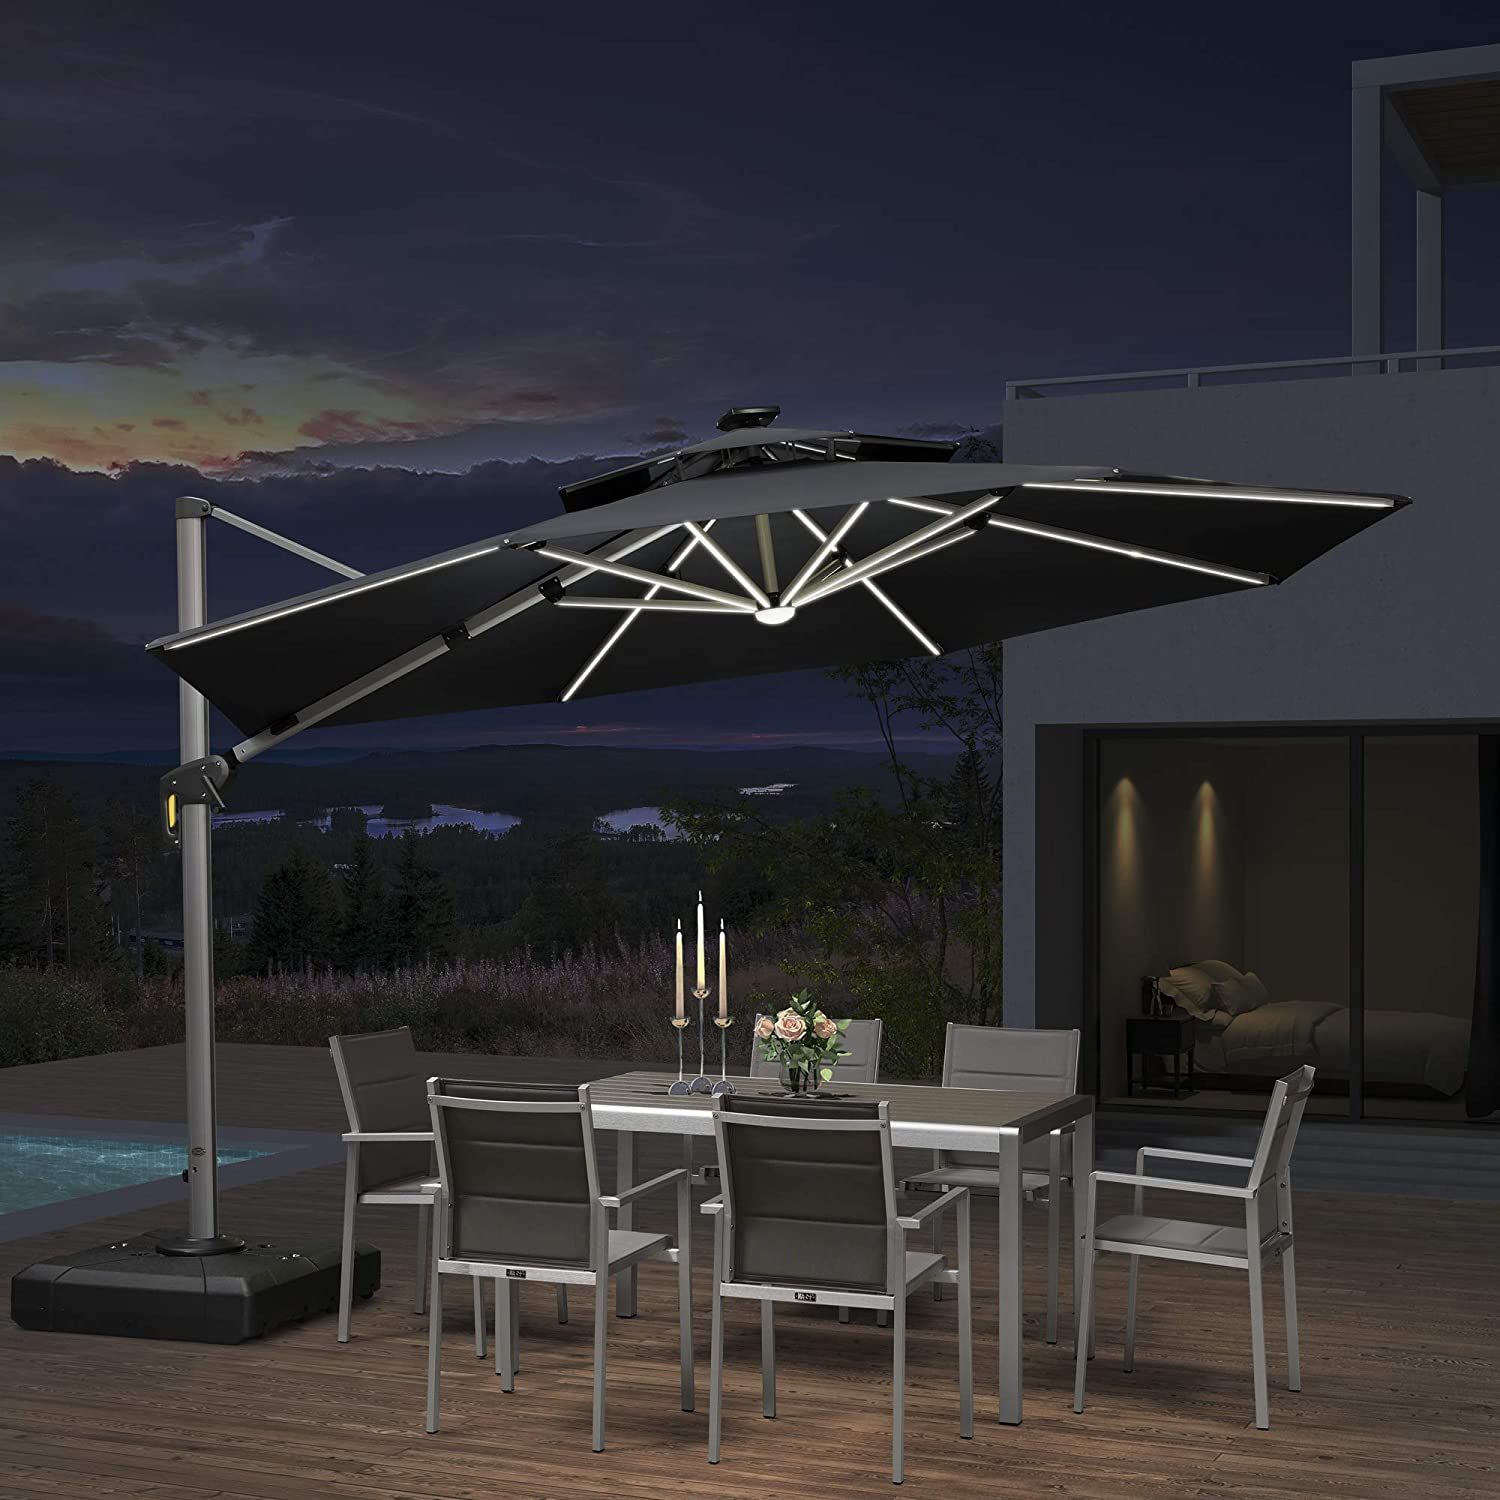 PURPLE LEAF 12ft Solar powered LED Patio Umbrella Outdoor Round Umbrella Large Cantilever Umbrella with LED lights Windproof Offset Umbrella Heavy Duty Sun Umbrella for Garden Deck Pool Patio, Grey